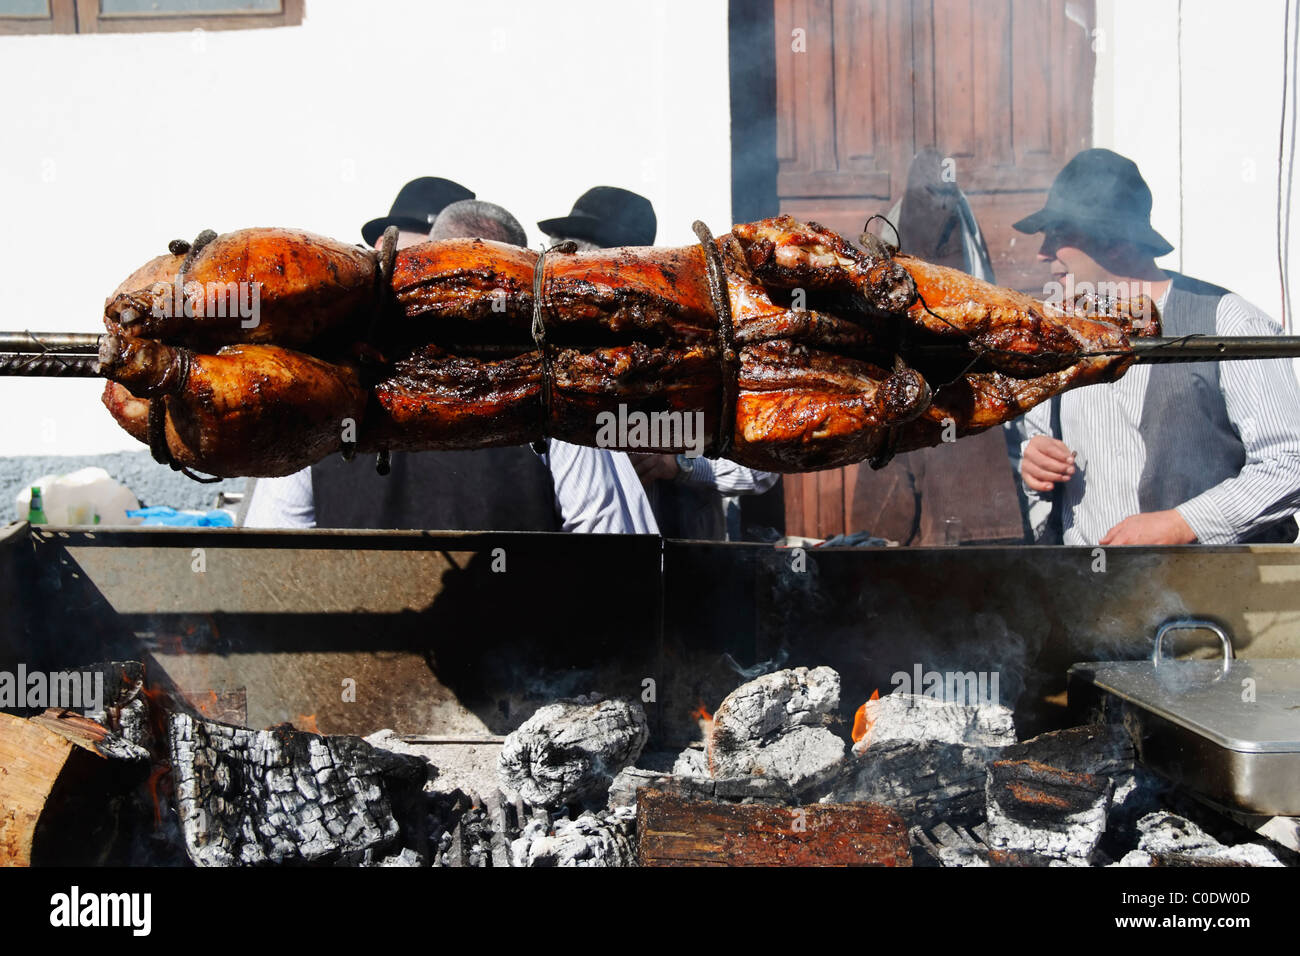 Whole pig roasting on barbecue at Fiesta del Almendro in Tejeda, Gran Canaria, Canary Islands, Spain Stock Photo